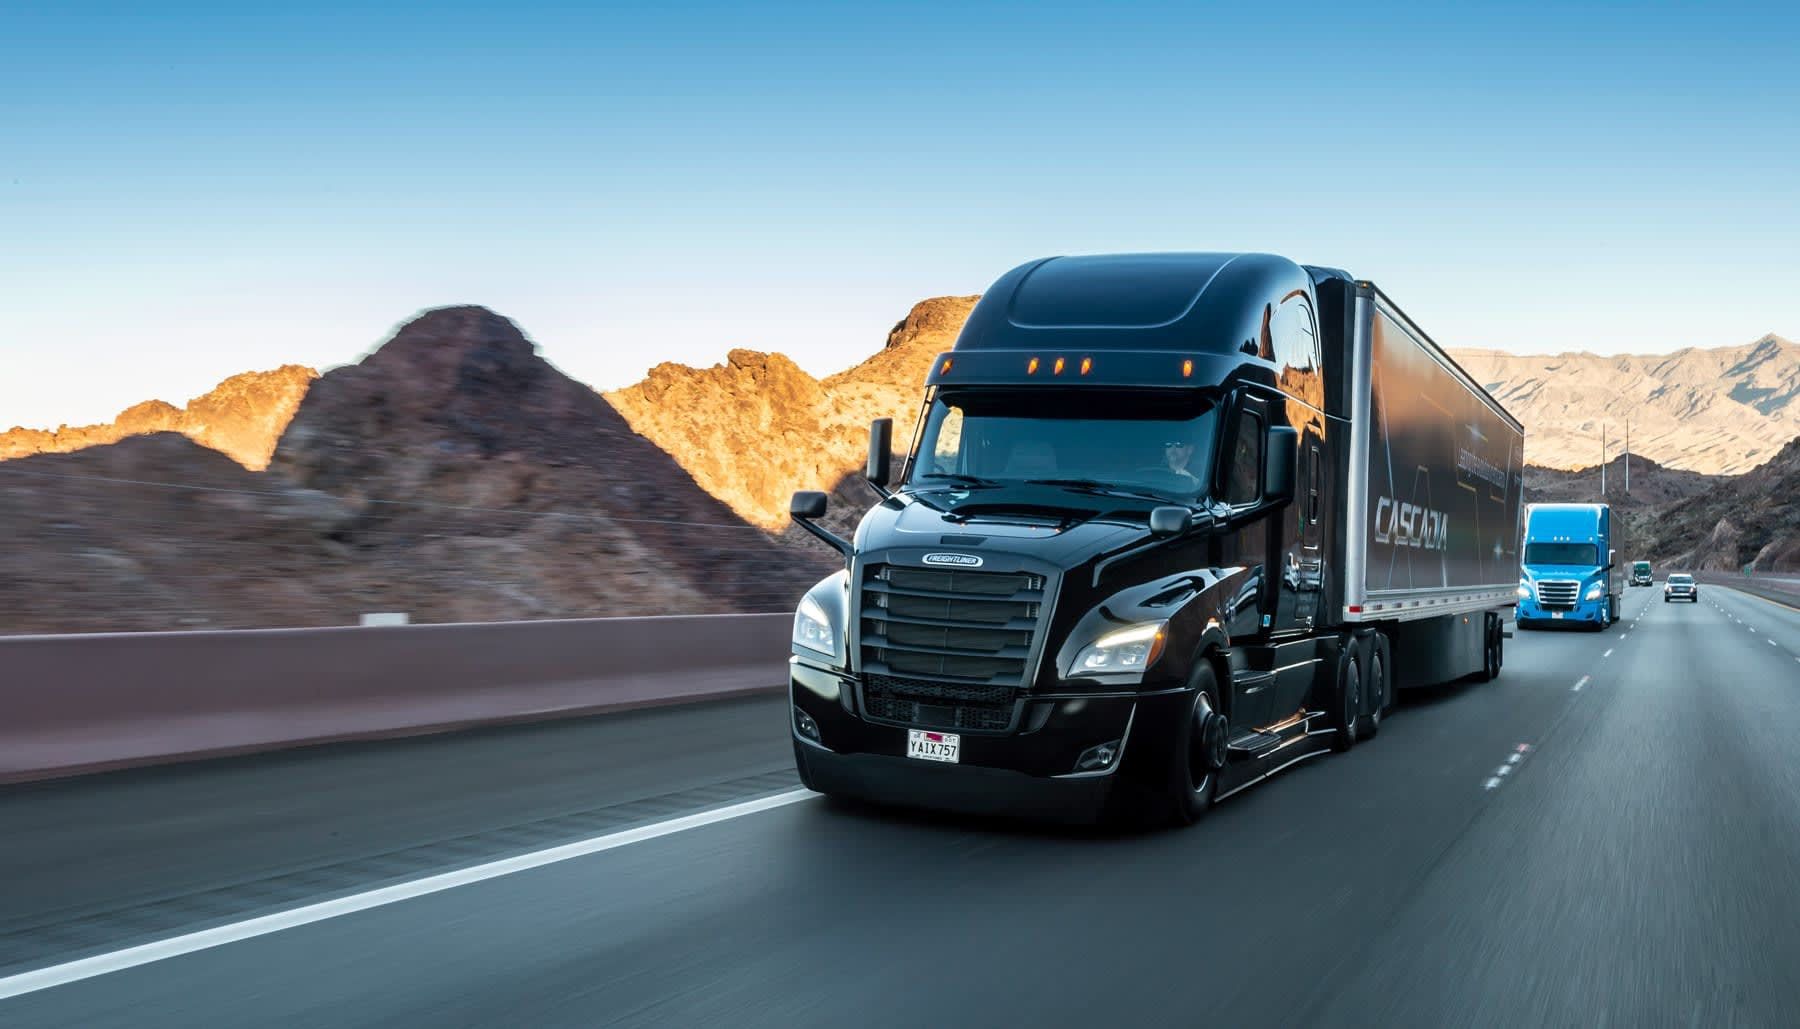 Daimler wants self-driving trucks on the roads in ten years